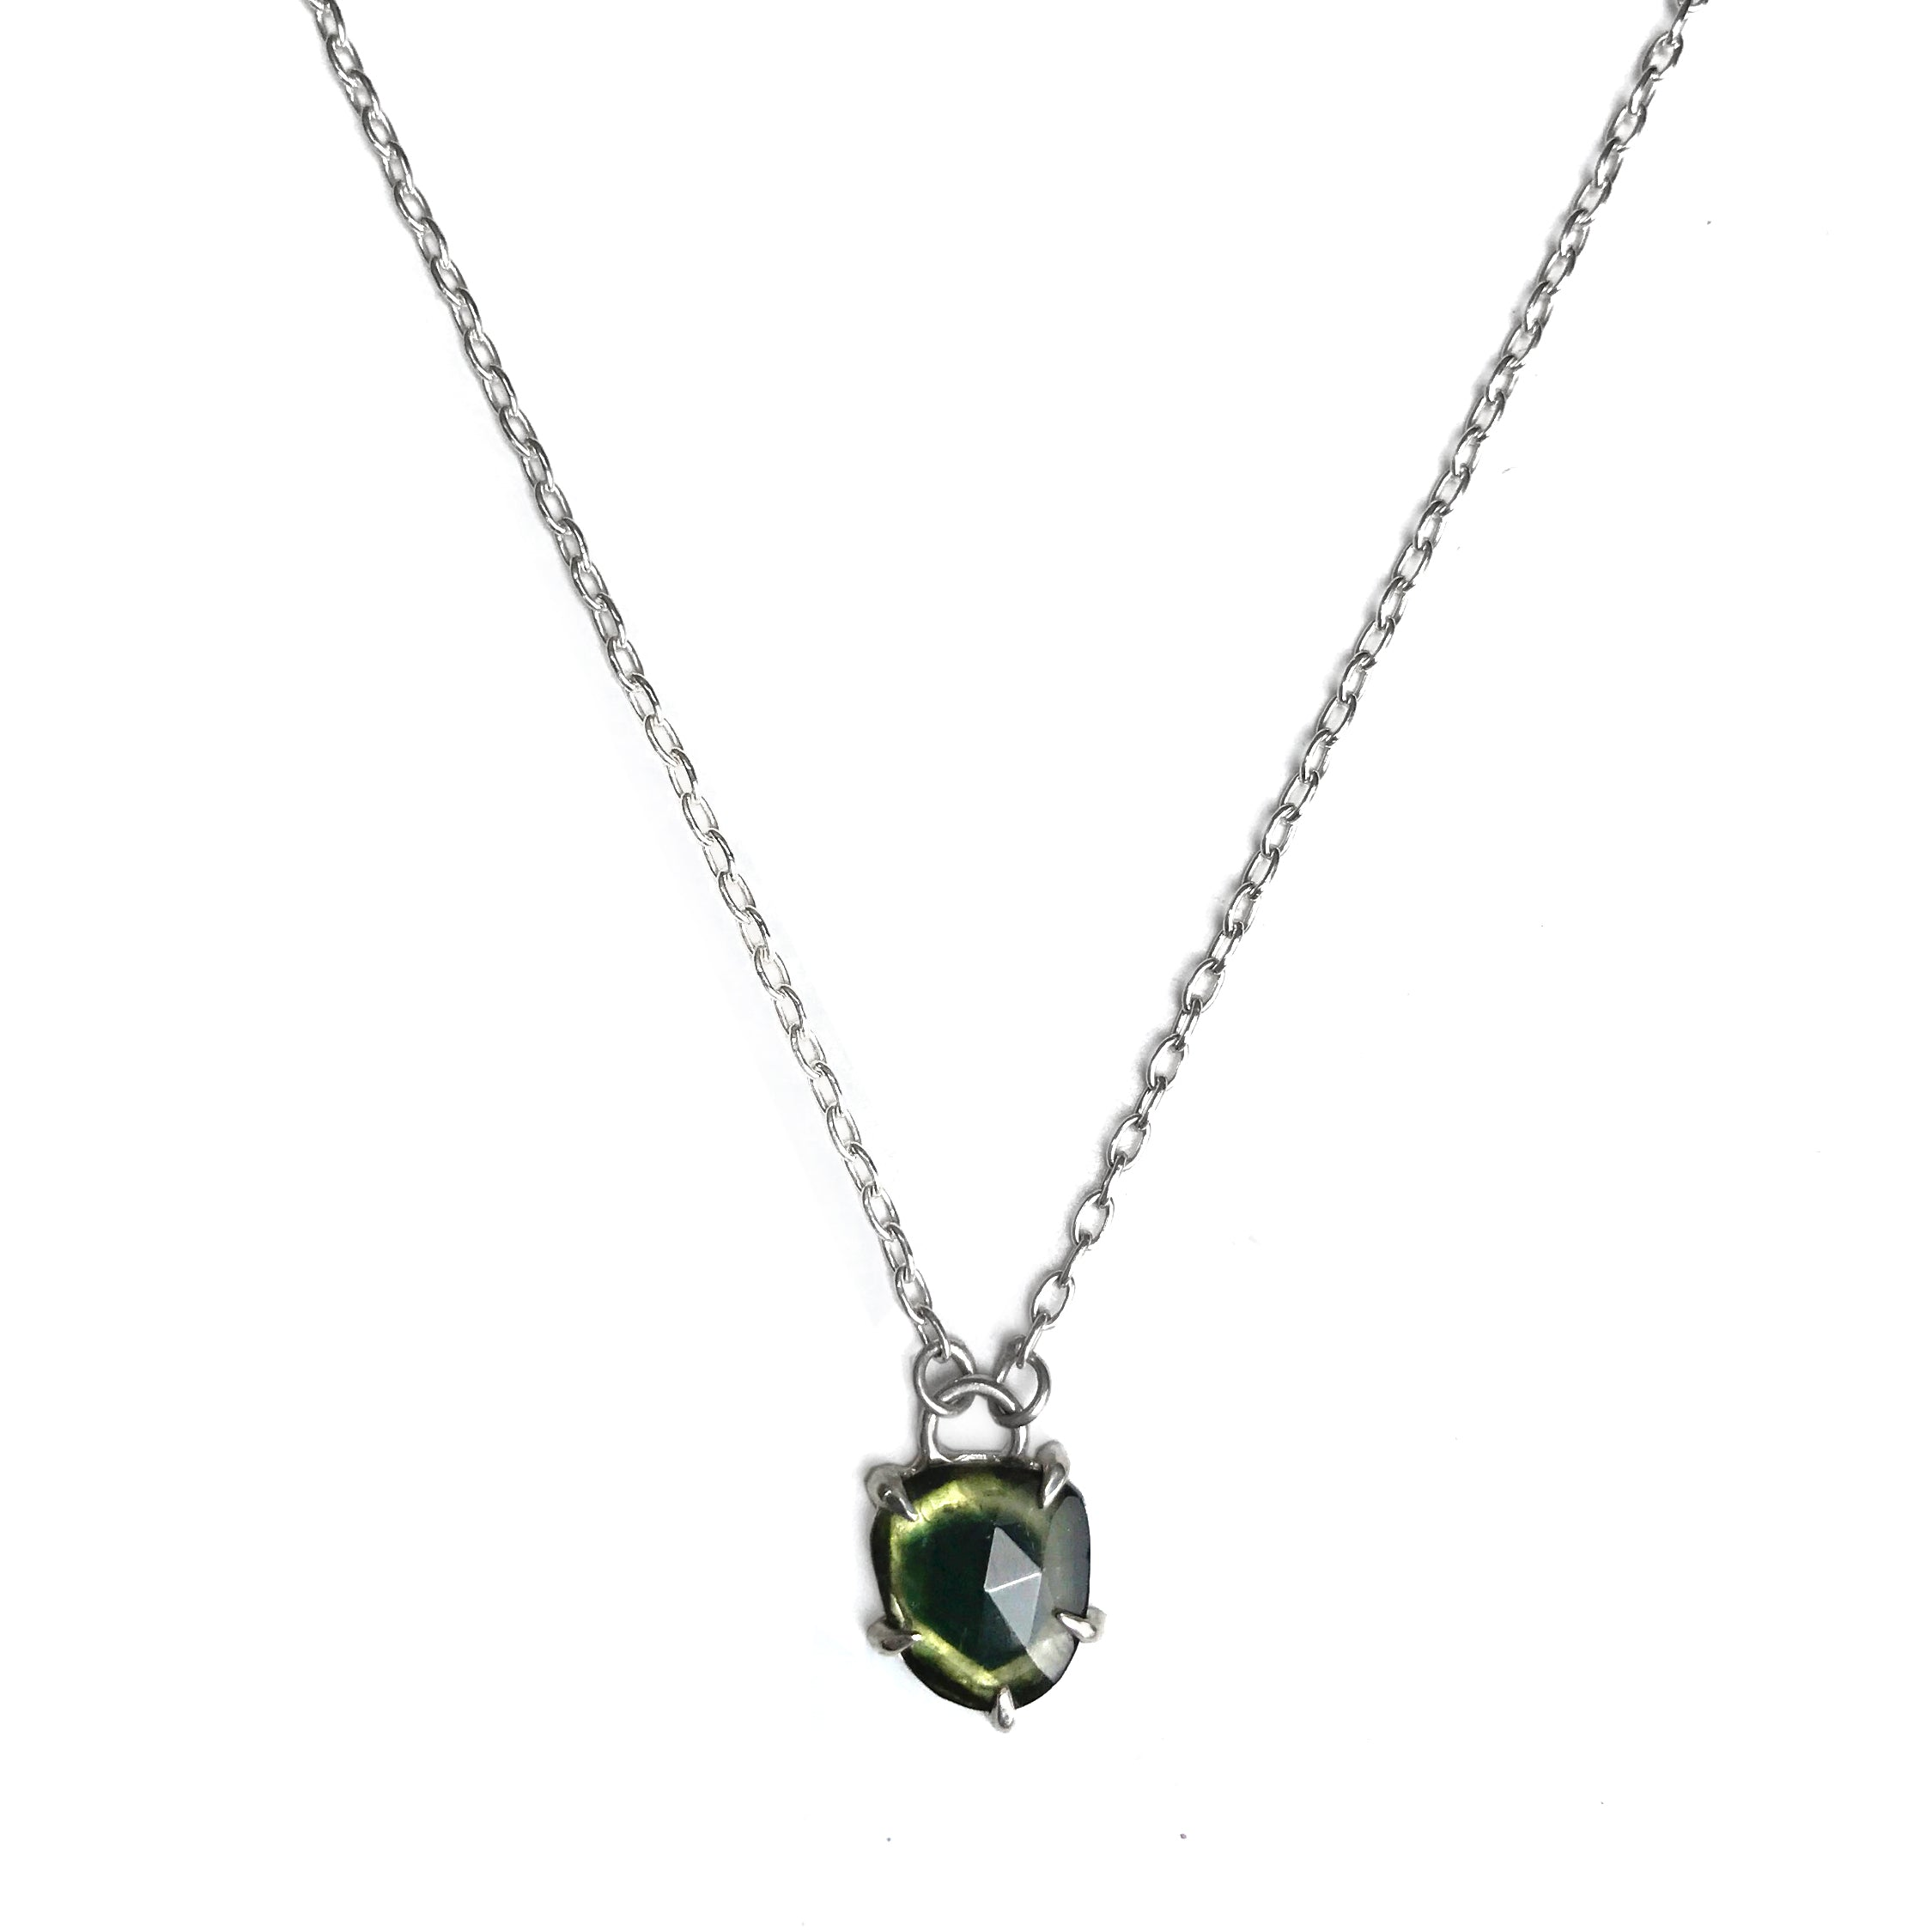 Green Tourmaline Necklace